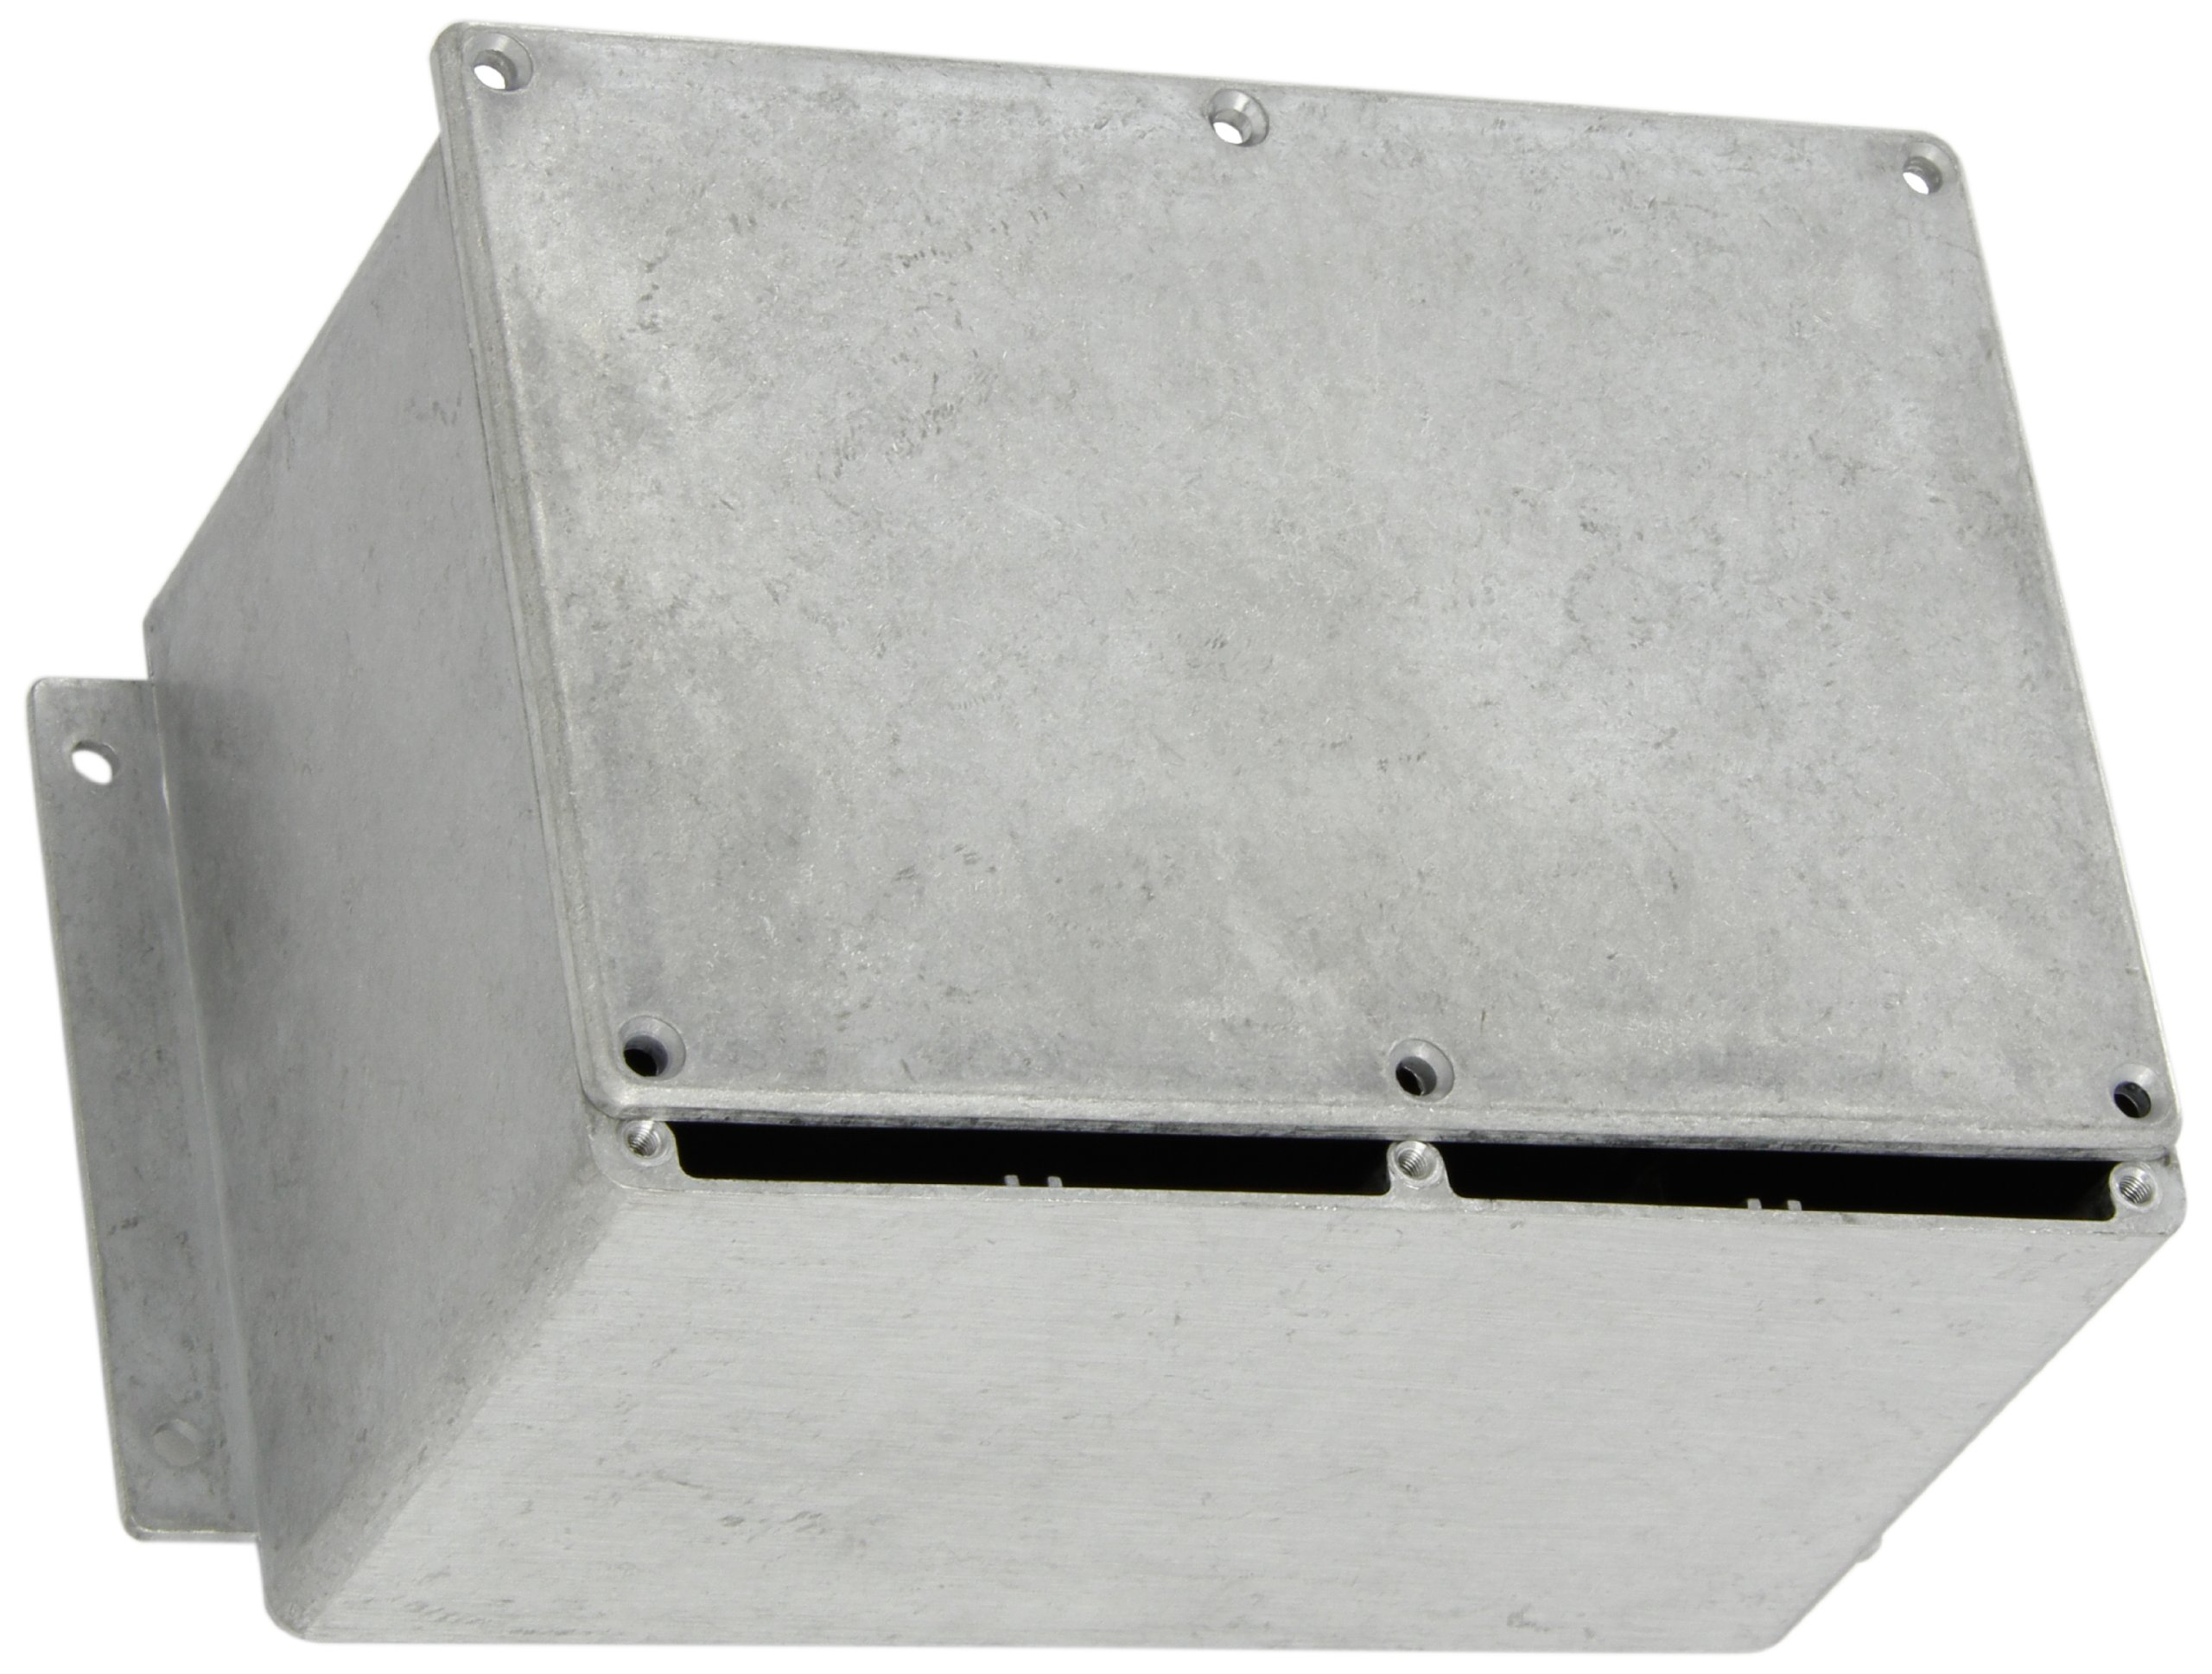 """BUD Industries CN-6710 Die Cast Aluminum Enclosure with Mounting Bracket, 6-49/64"""" Length x 4-49/64"""" Width x 4-13/64"""" Height, Natural Finish"""